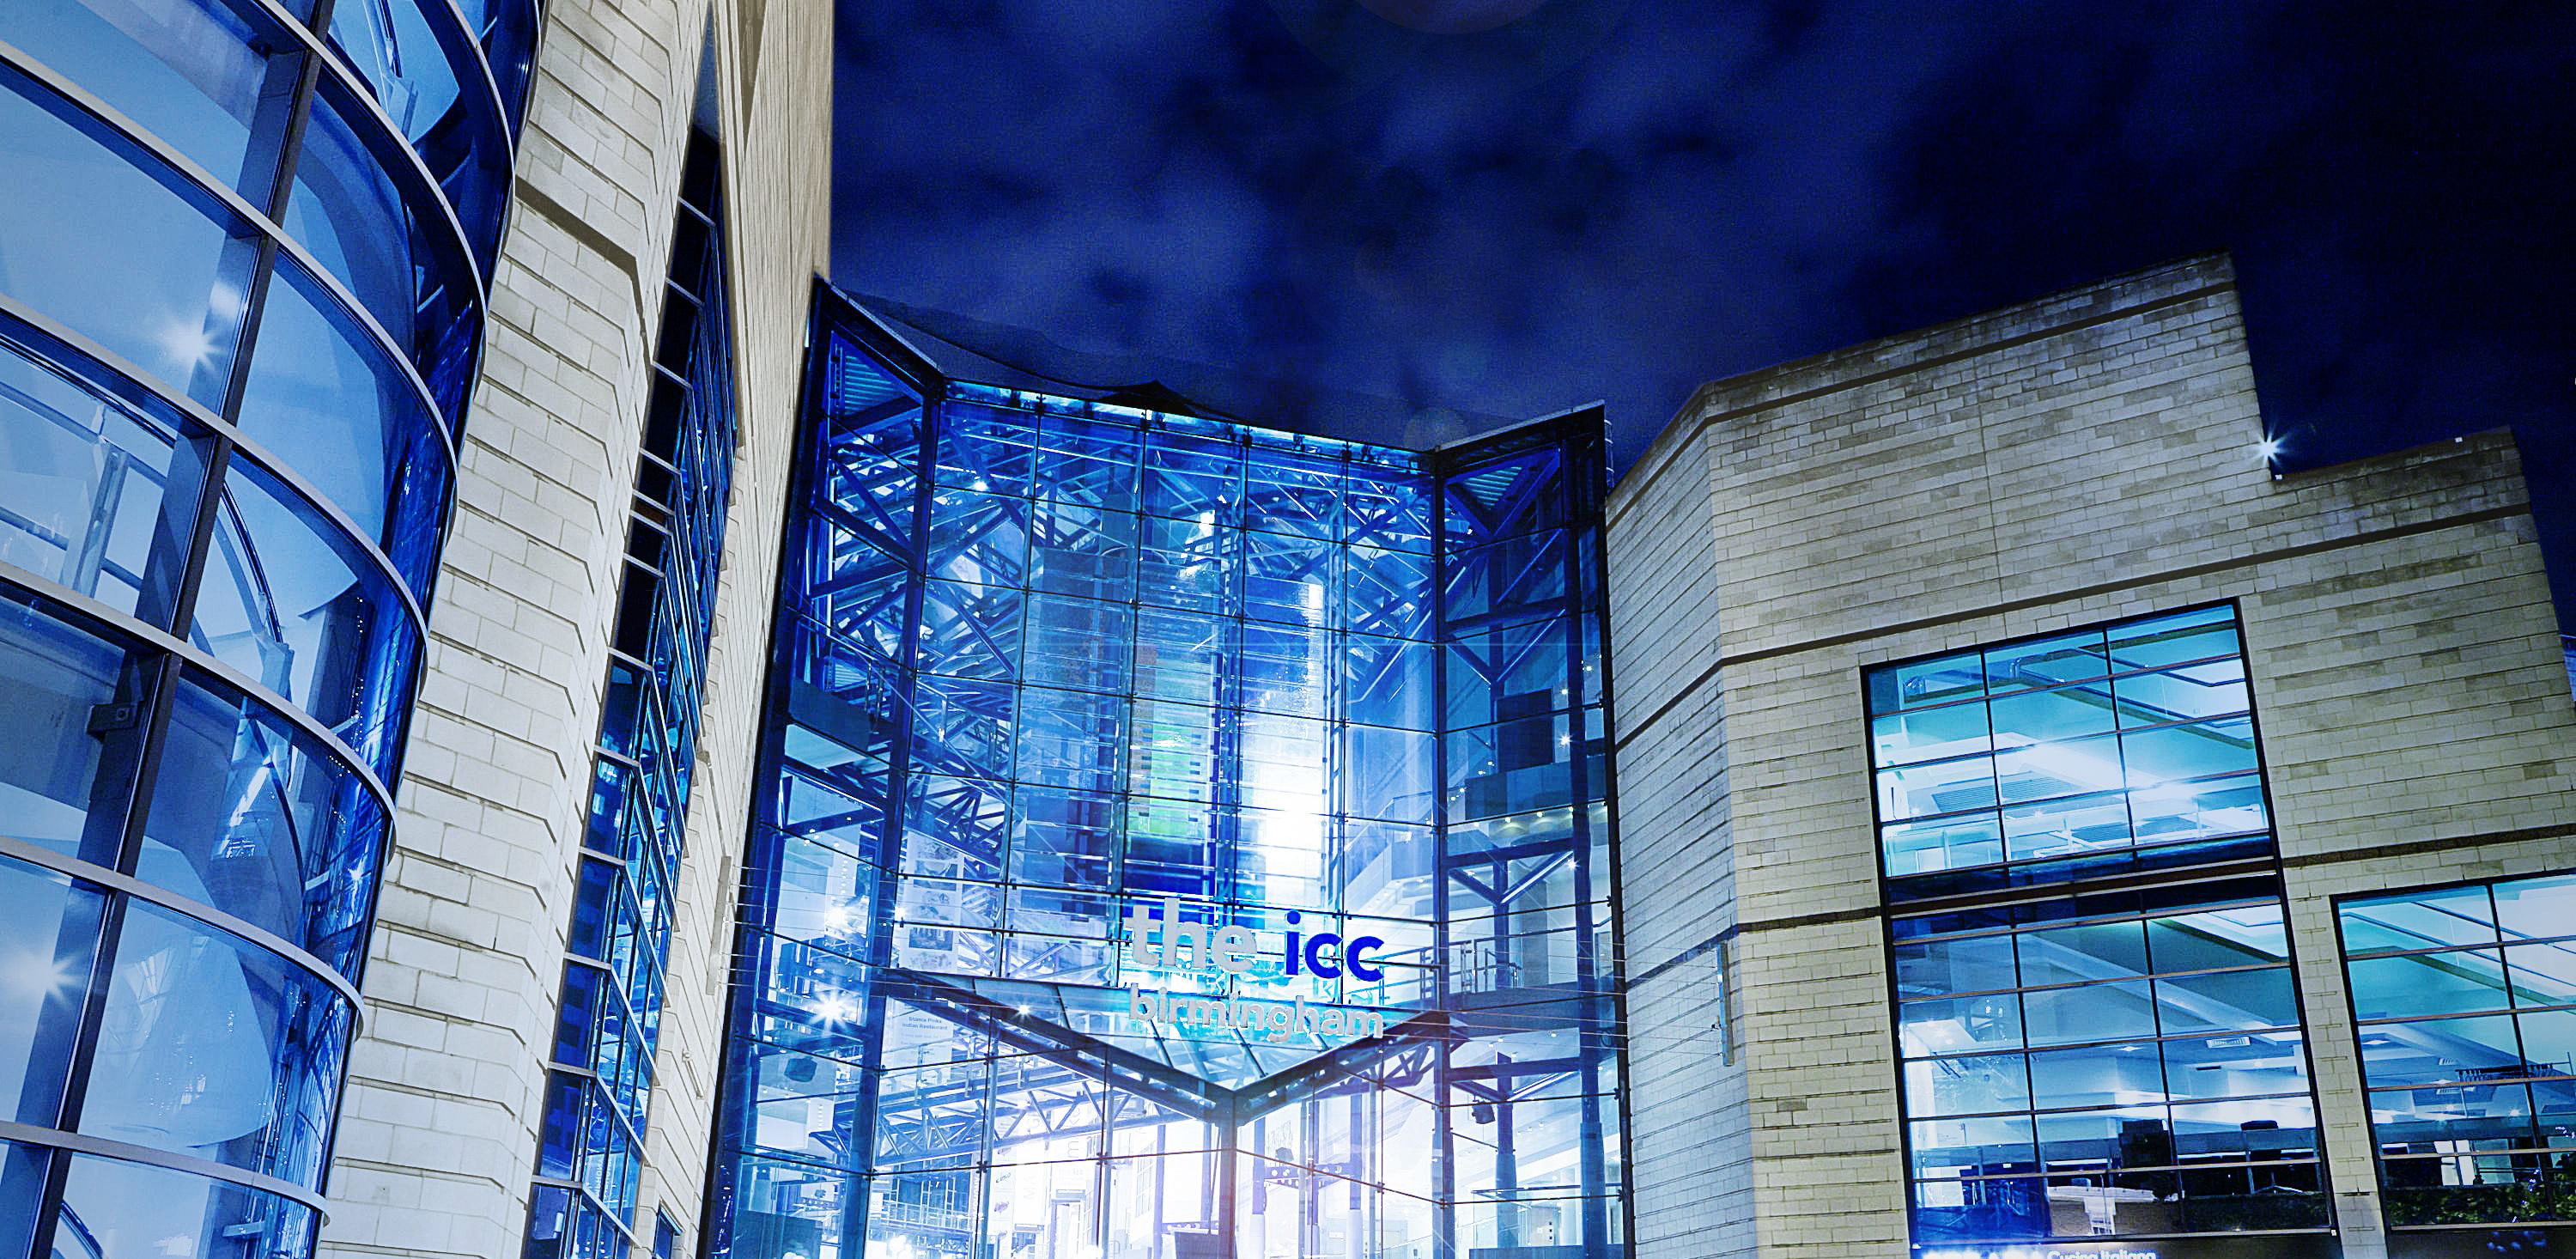 The ICC in Birmingham will host the Birmingham Inspiration Awards and Top UK Model 2017 finals on Saturday Nov 11th